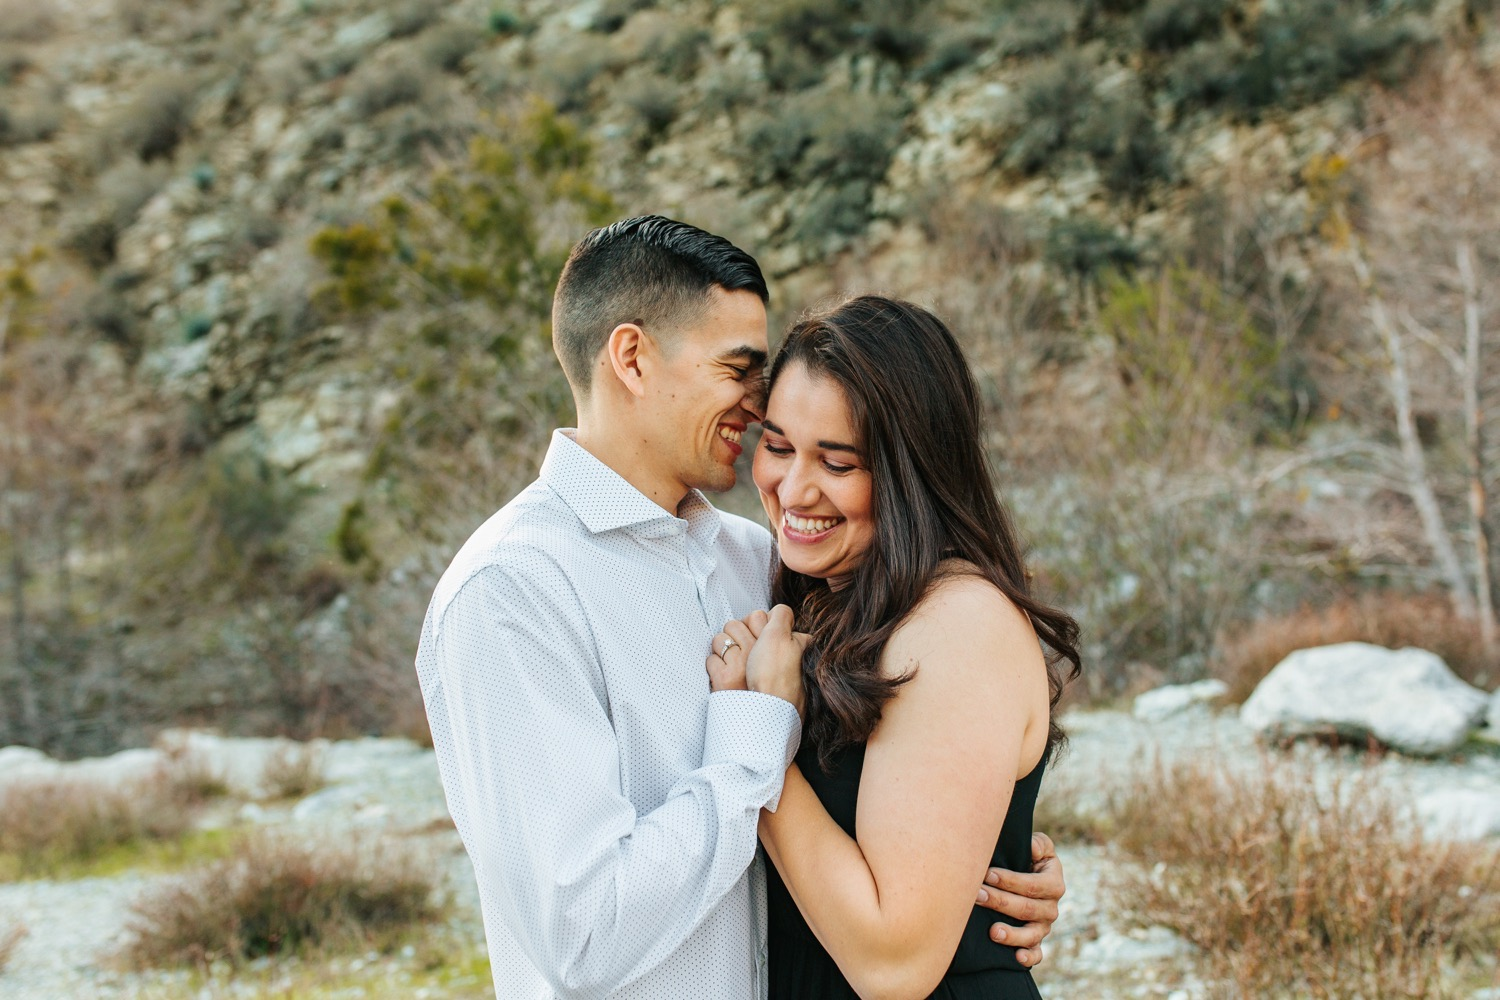 Sweet and Romantic Engagement Photos - https://brittneyhannonphotography.com